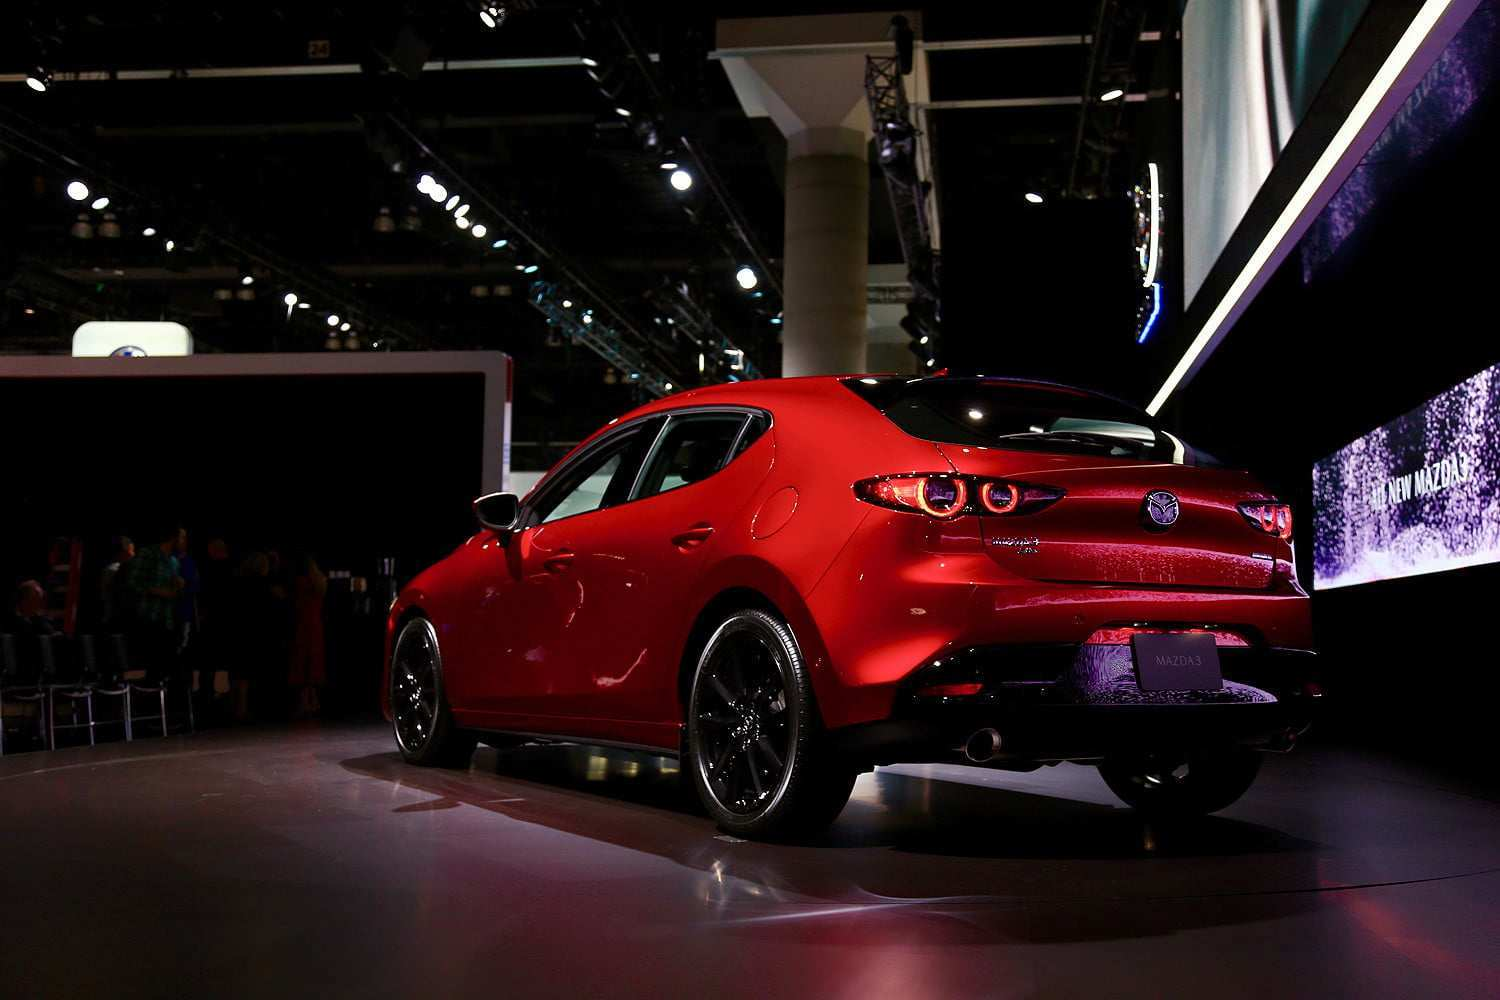 47 Concept of 2020 Mazda 3 Gas Mileage Reviews for 2020 Mazda 3 Gas Mileage